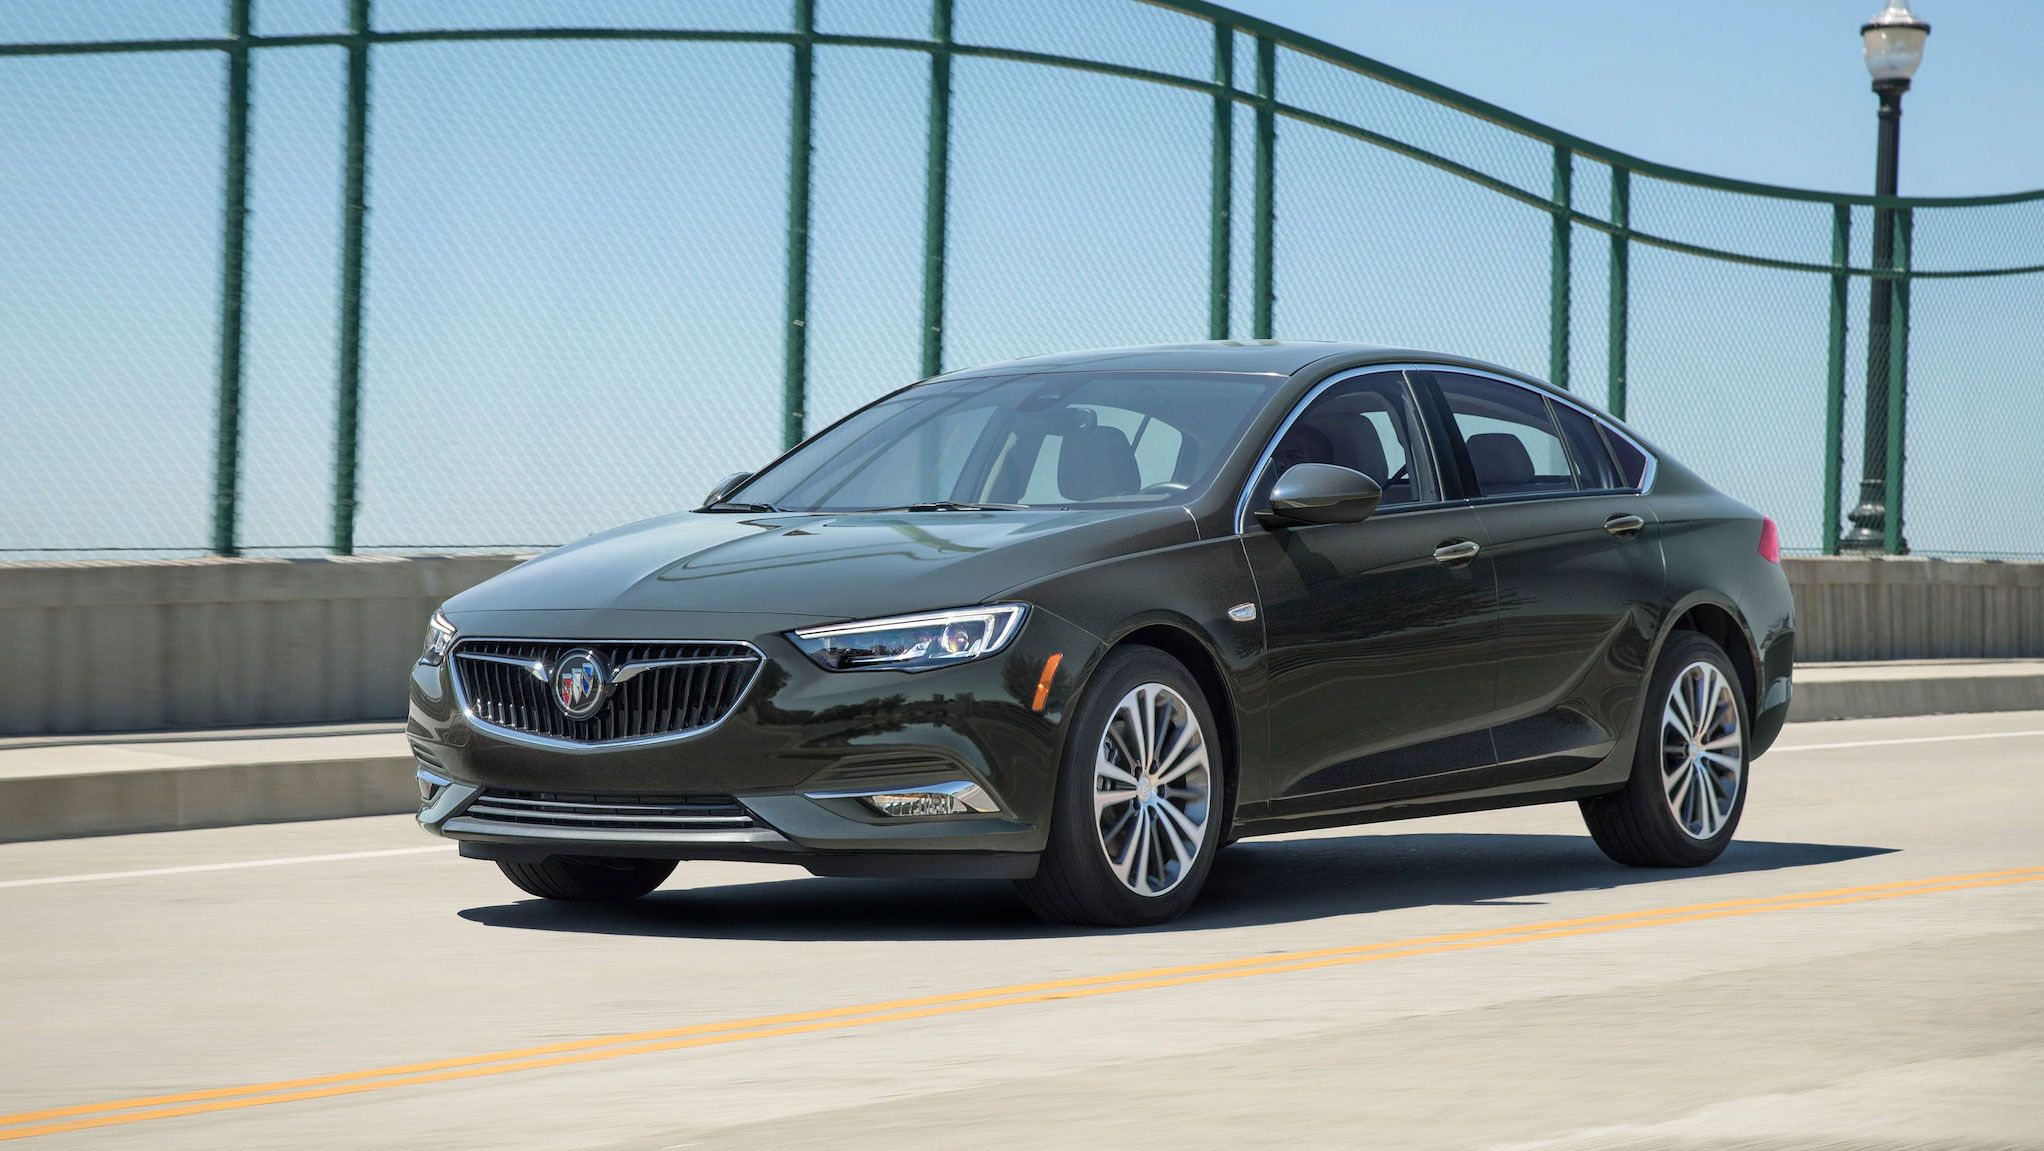 2020 Buick Regal Sportback Review, Pricing, And Specs New 2021 Buick Regal Lease, Length, Trim Levels